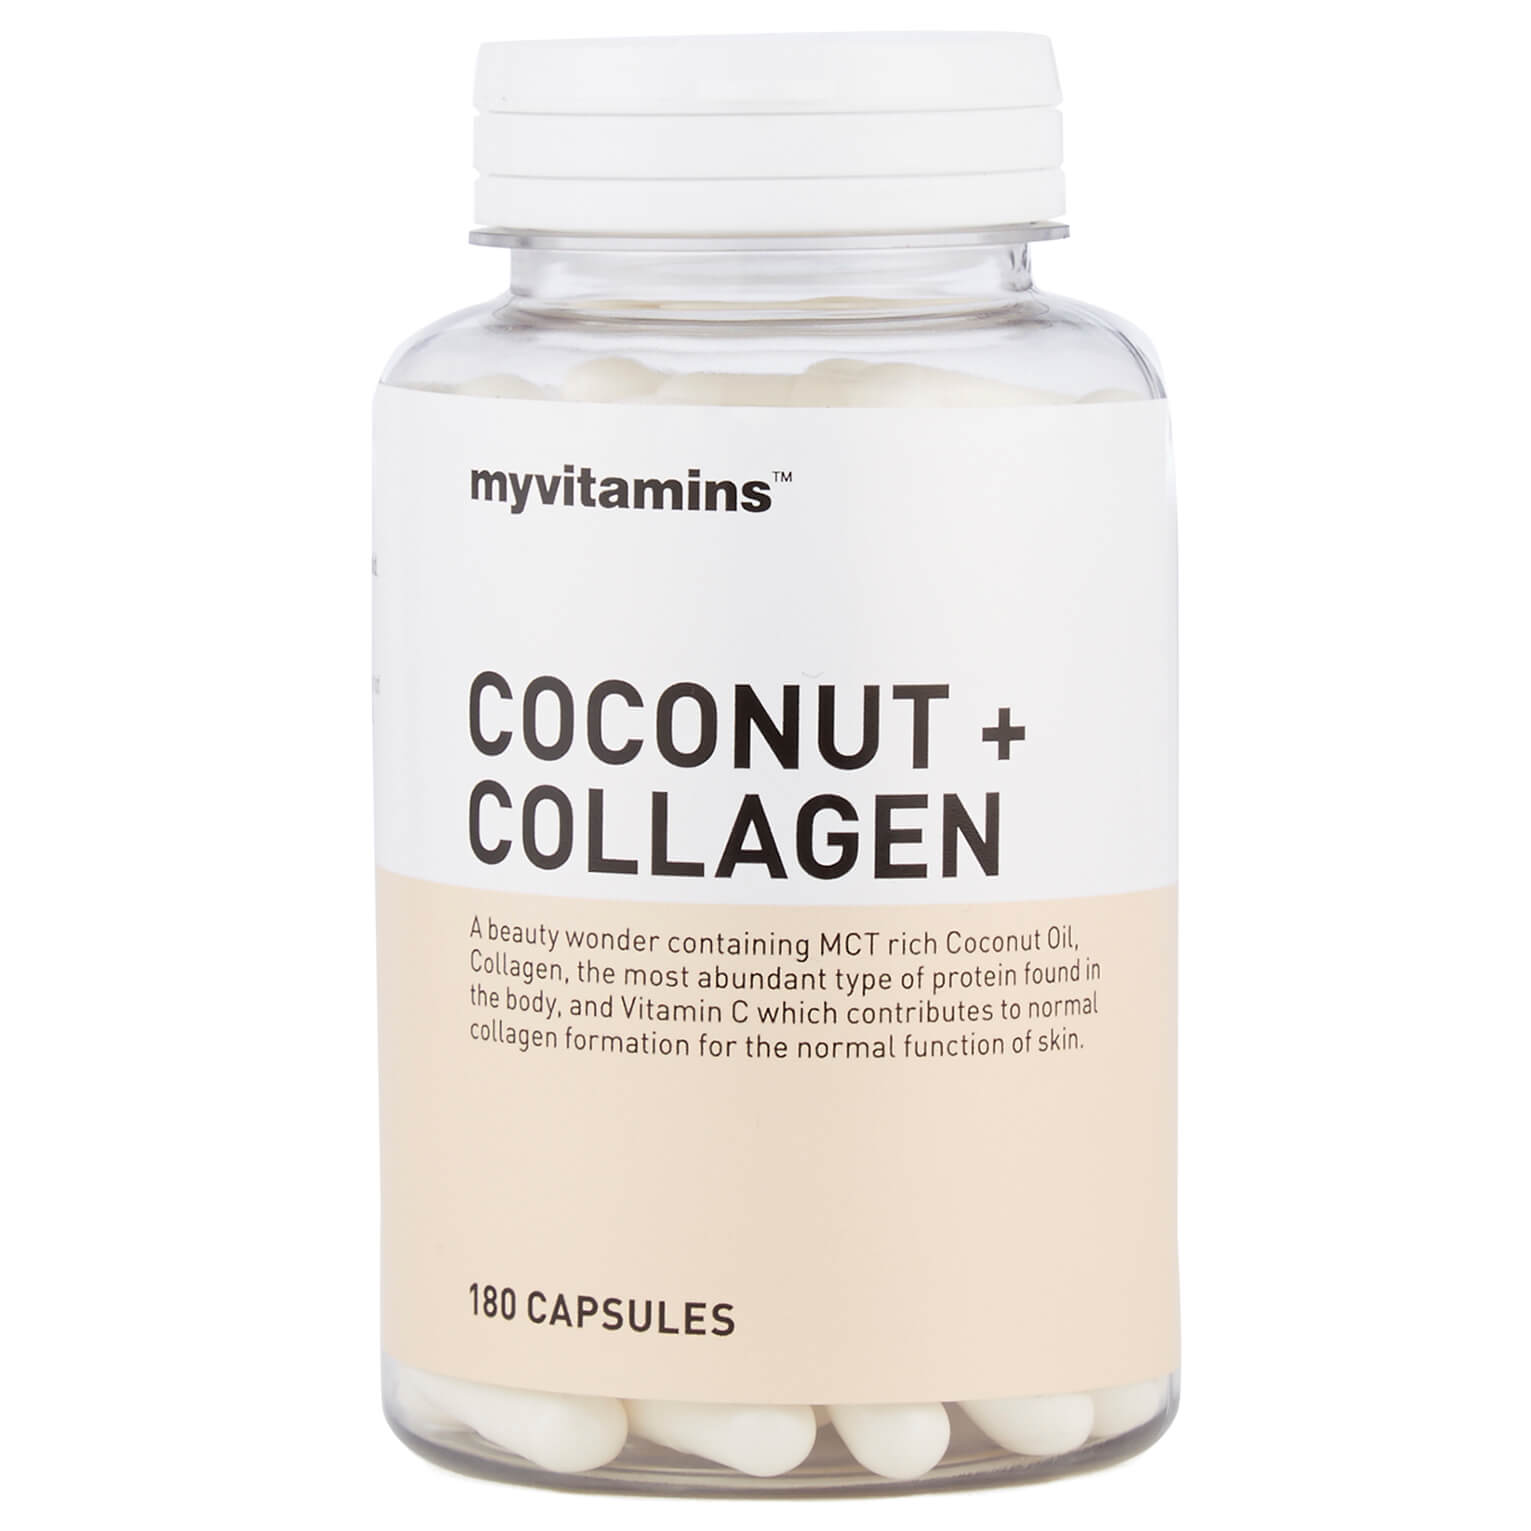 Myvitamins Coconut + Collagen, 60 Capsules